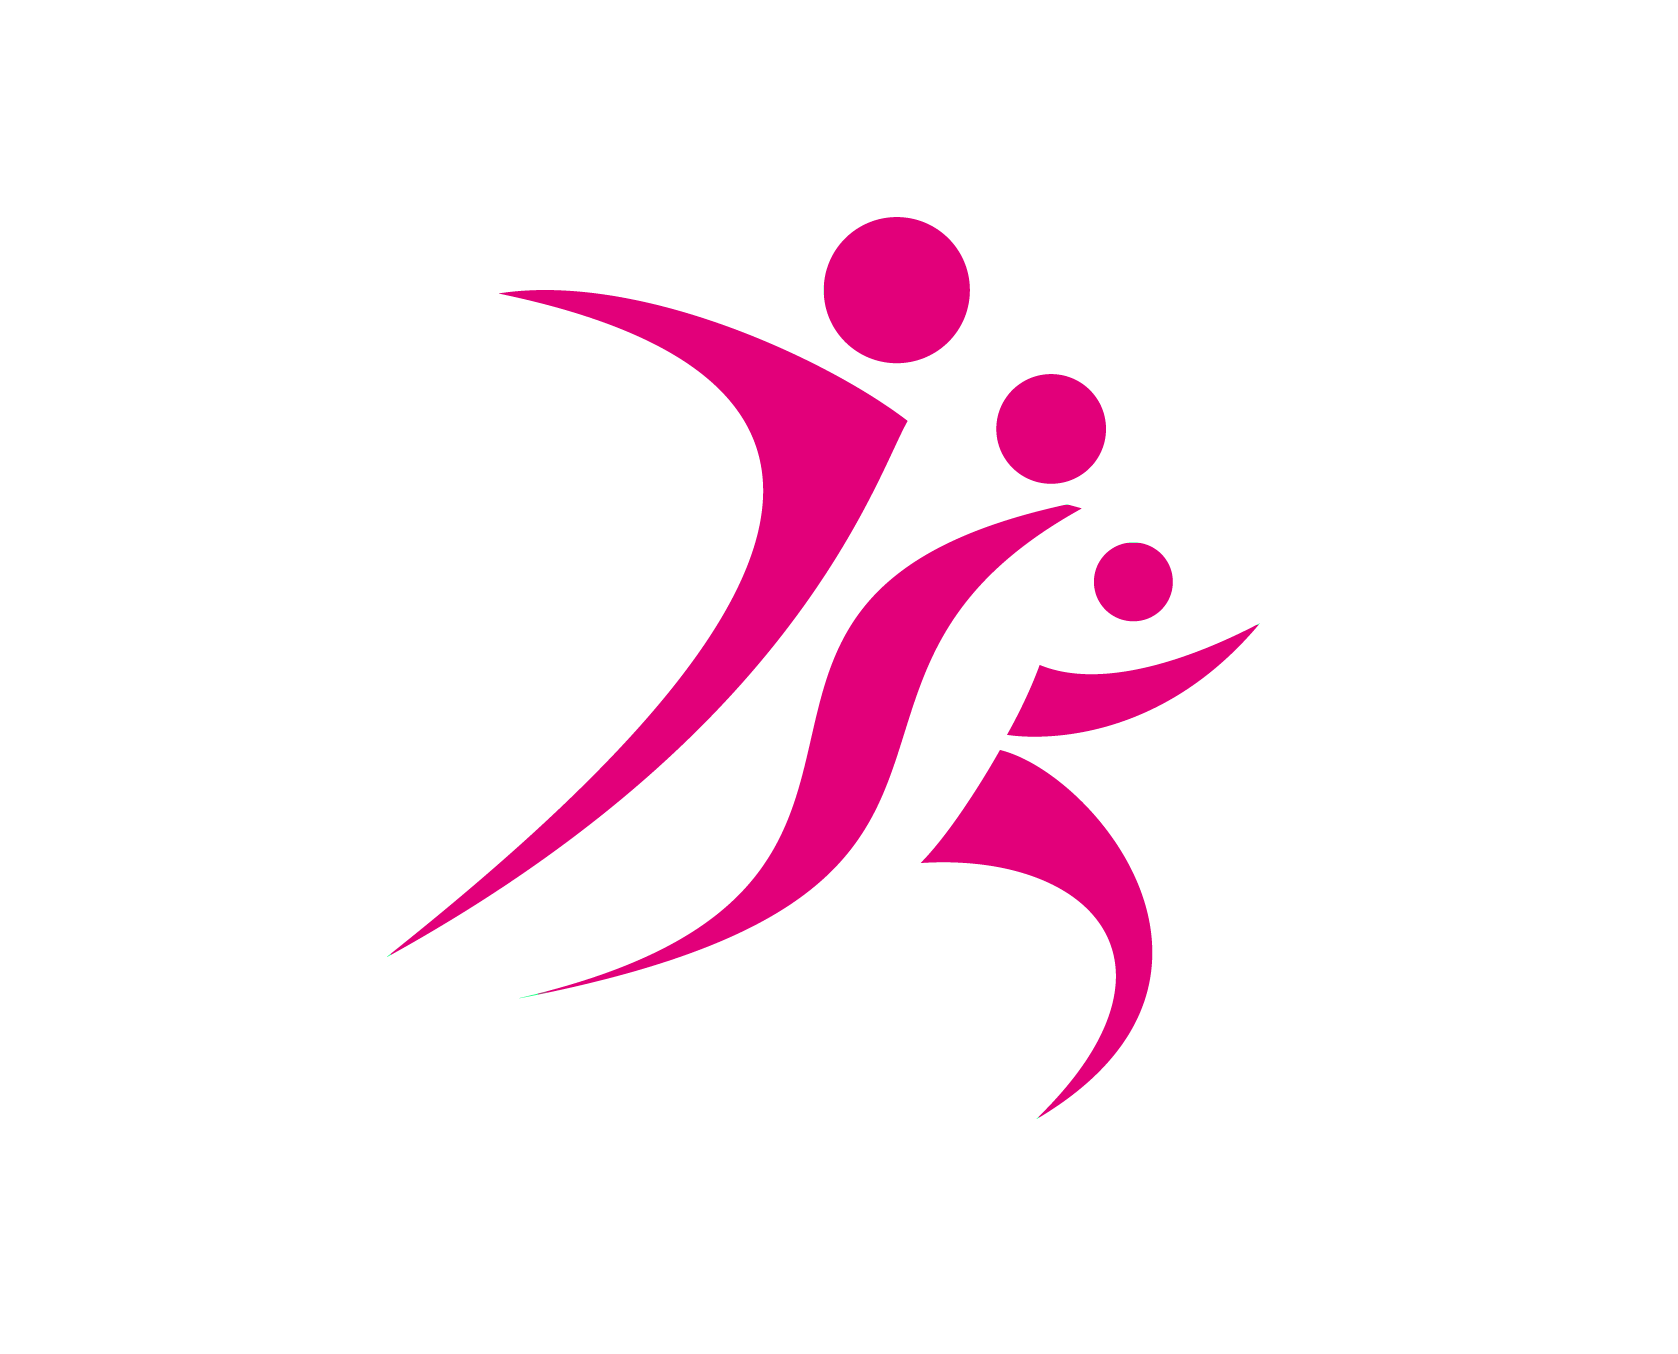 Club RMA PARIS